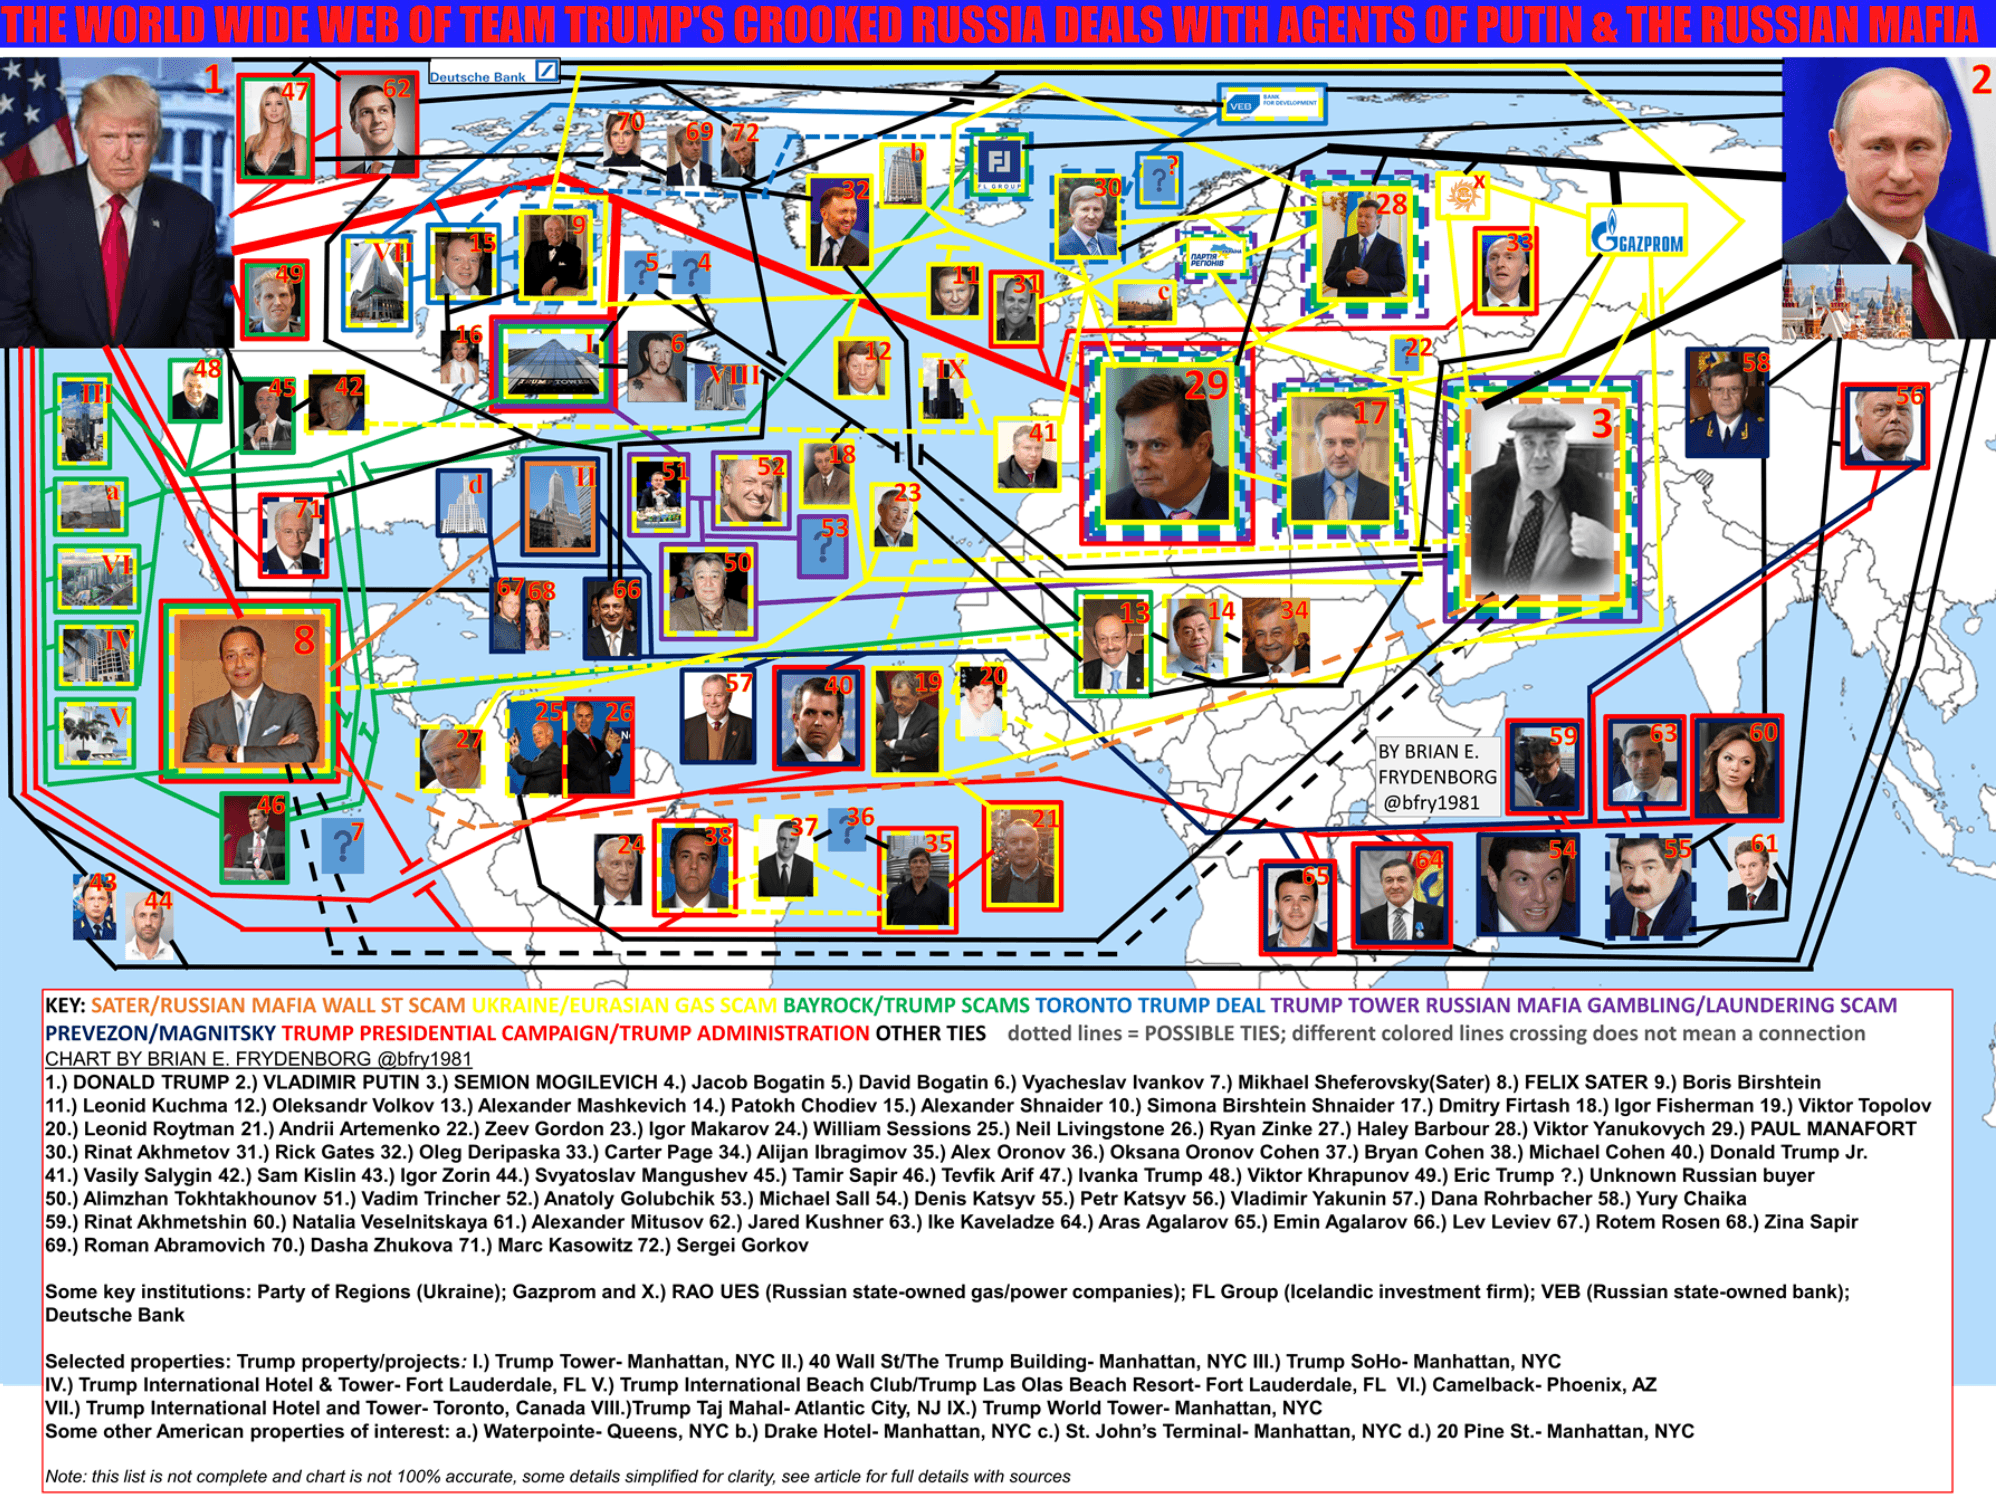 Trump-Russia chart detailing Russian mafia and Russian government (Team Putin) connections to Donald Trump and his associates (Team Trump) by Brian Frydenborg Aug. 2017 with minor revisions since